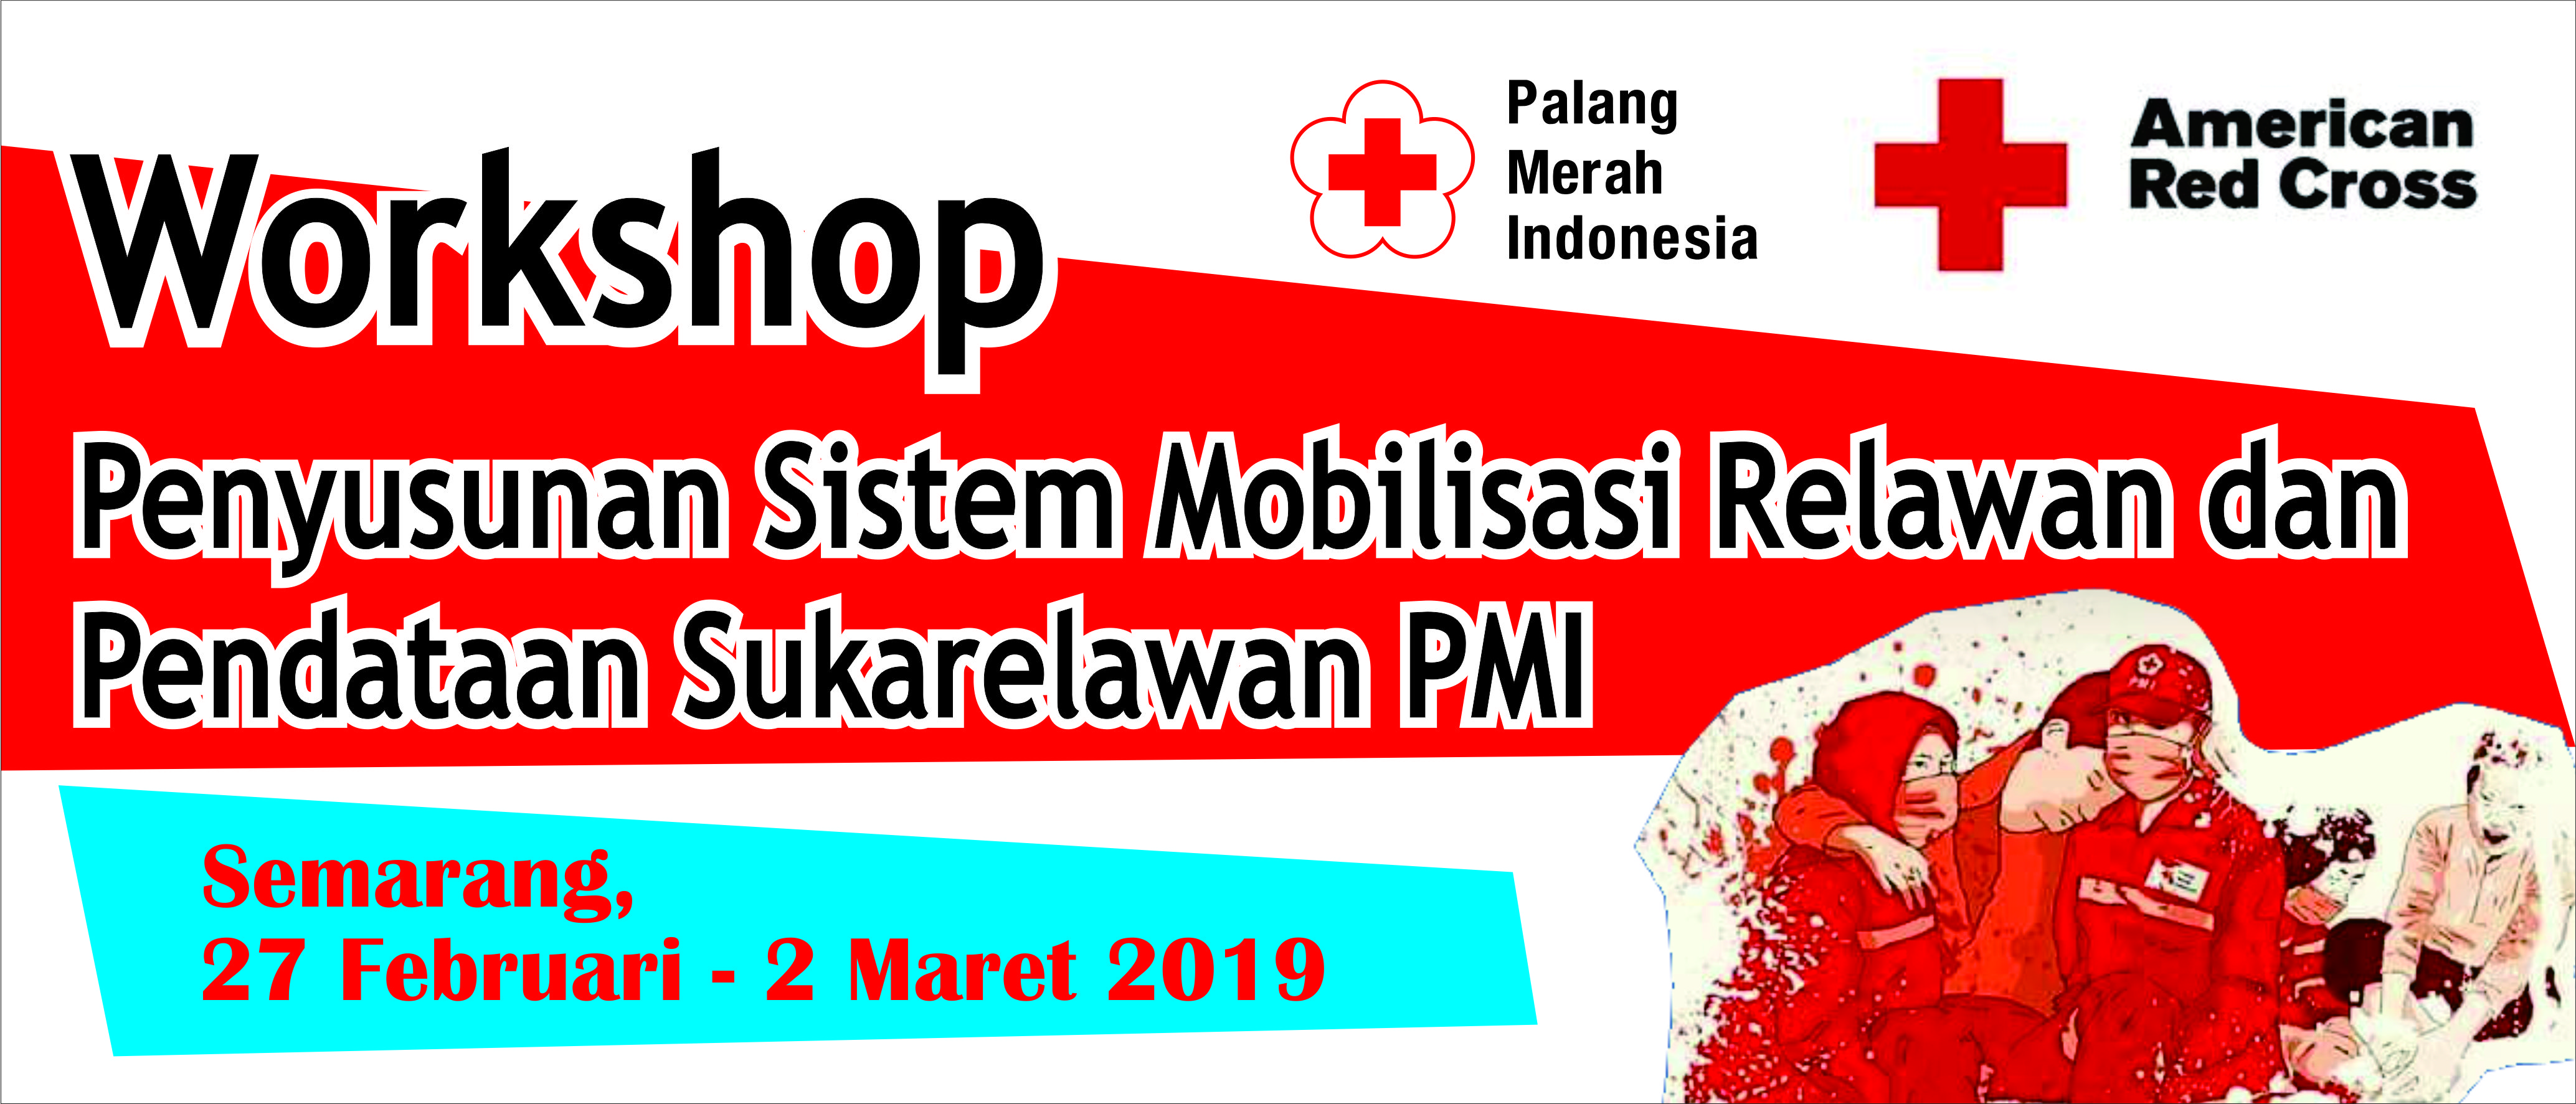 workshop_pendataan_relawan.jpg